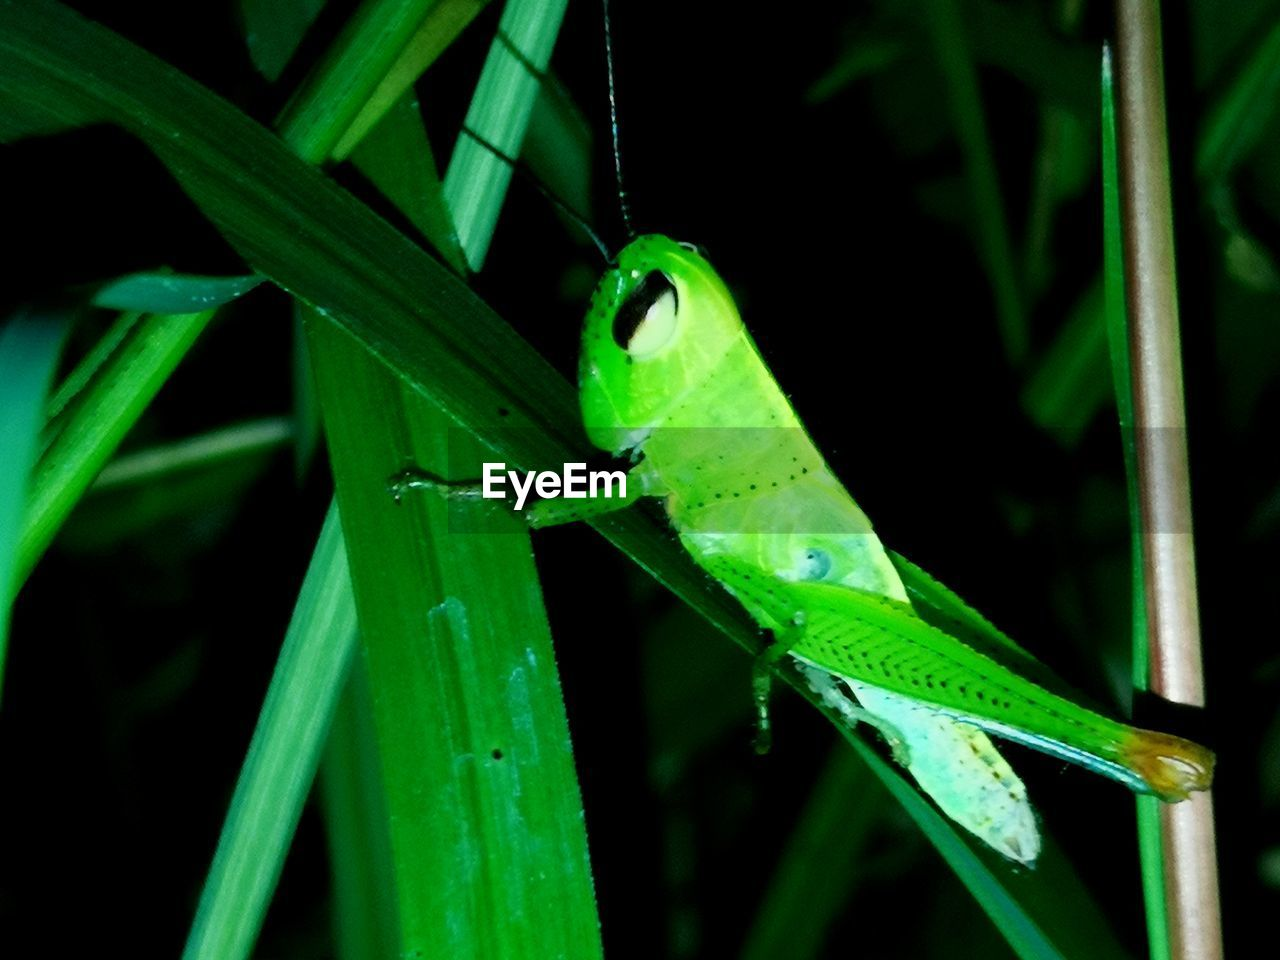 green color, animals in the wild, one animal, animal wildlife, animal themes, animal, plant, vertebrate, close-up, nature, leaf, plant part, reptile, no people, lizard, focus on foreground, grasshopper, invertebrate, blade of grass, insect, outdoors, animal eye